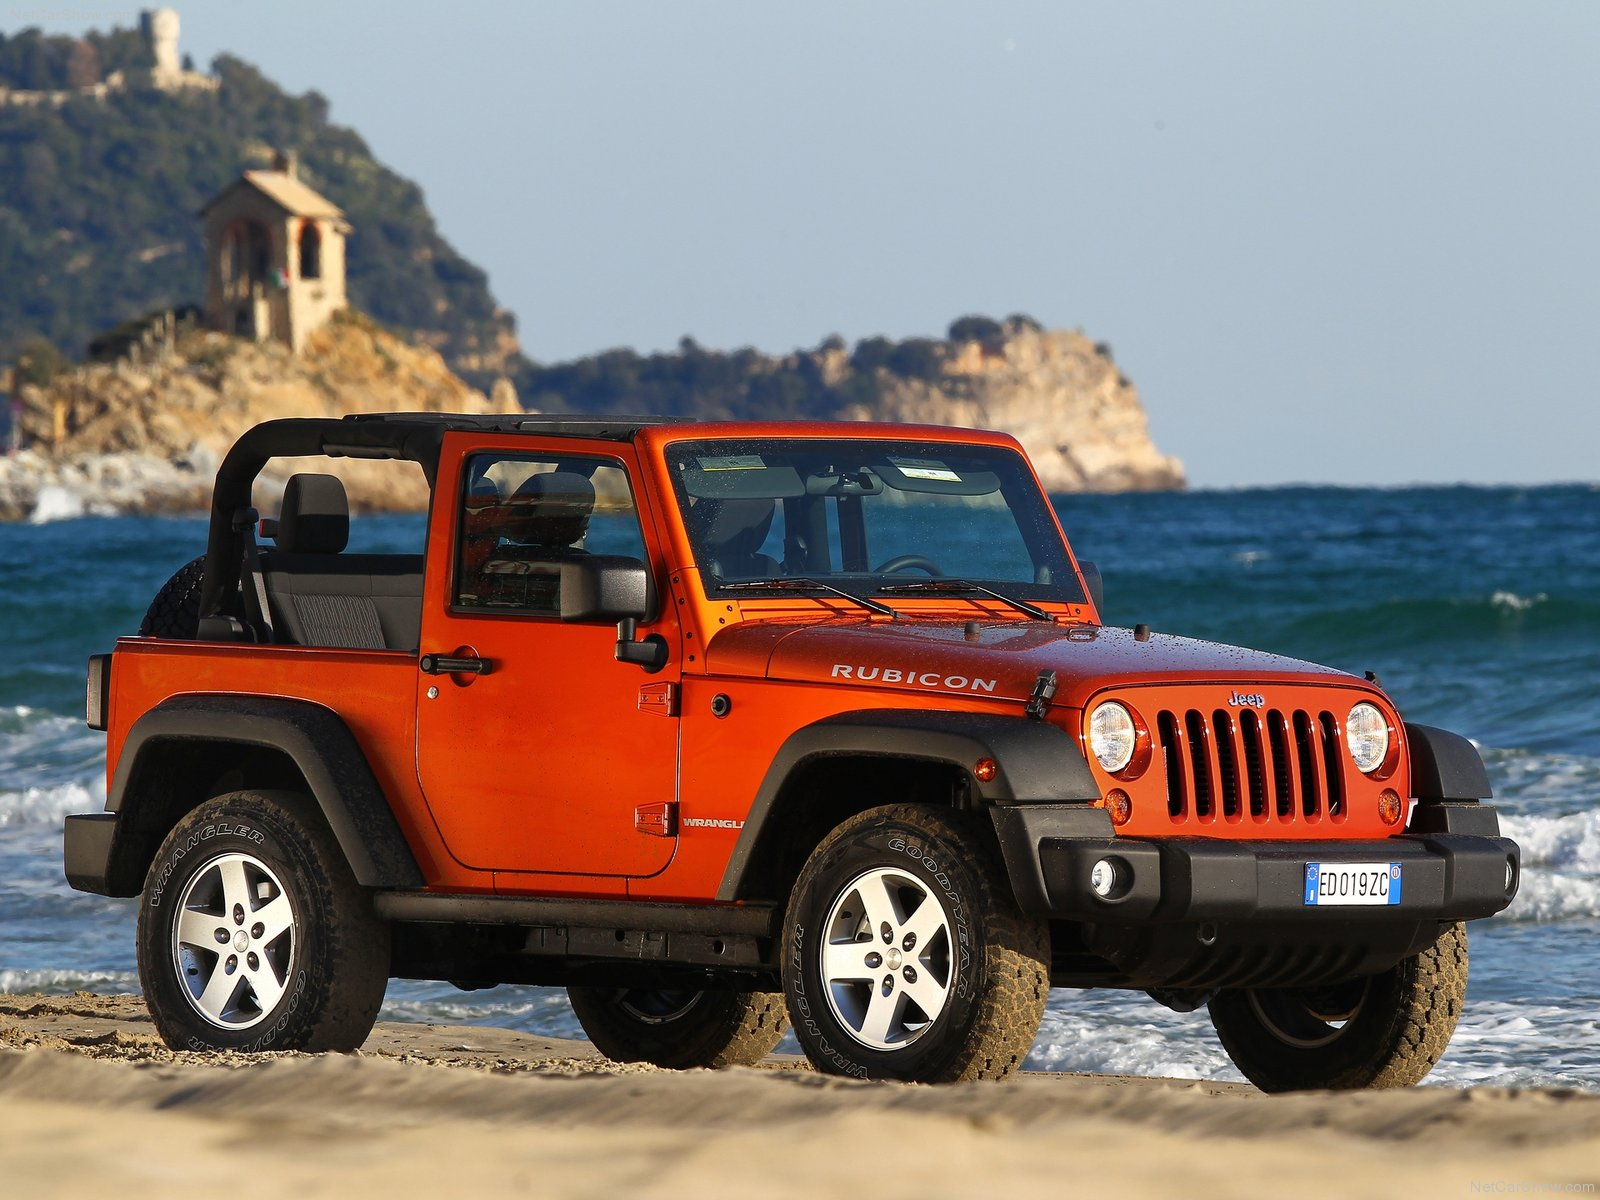 jeep wallpapers jeep wallpapers jeep wallpapers jeep wallpapers jeep 1600x1200